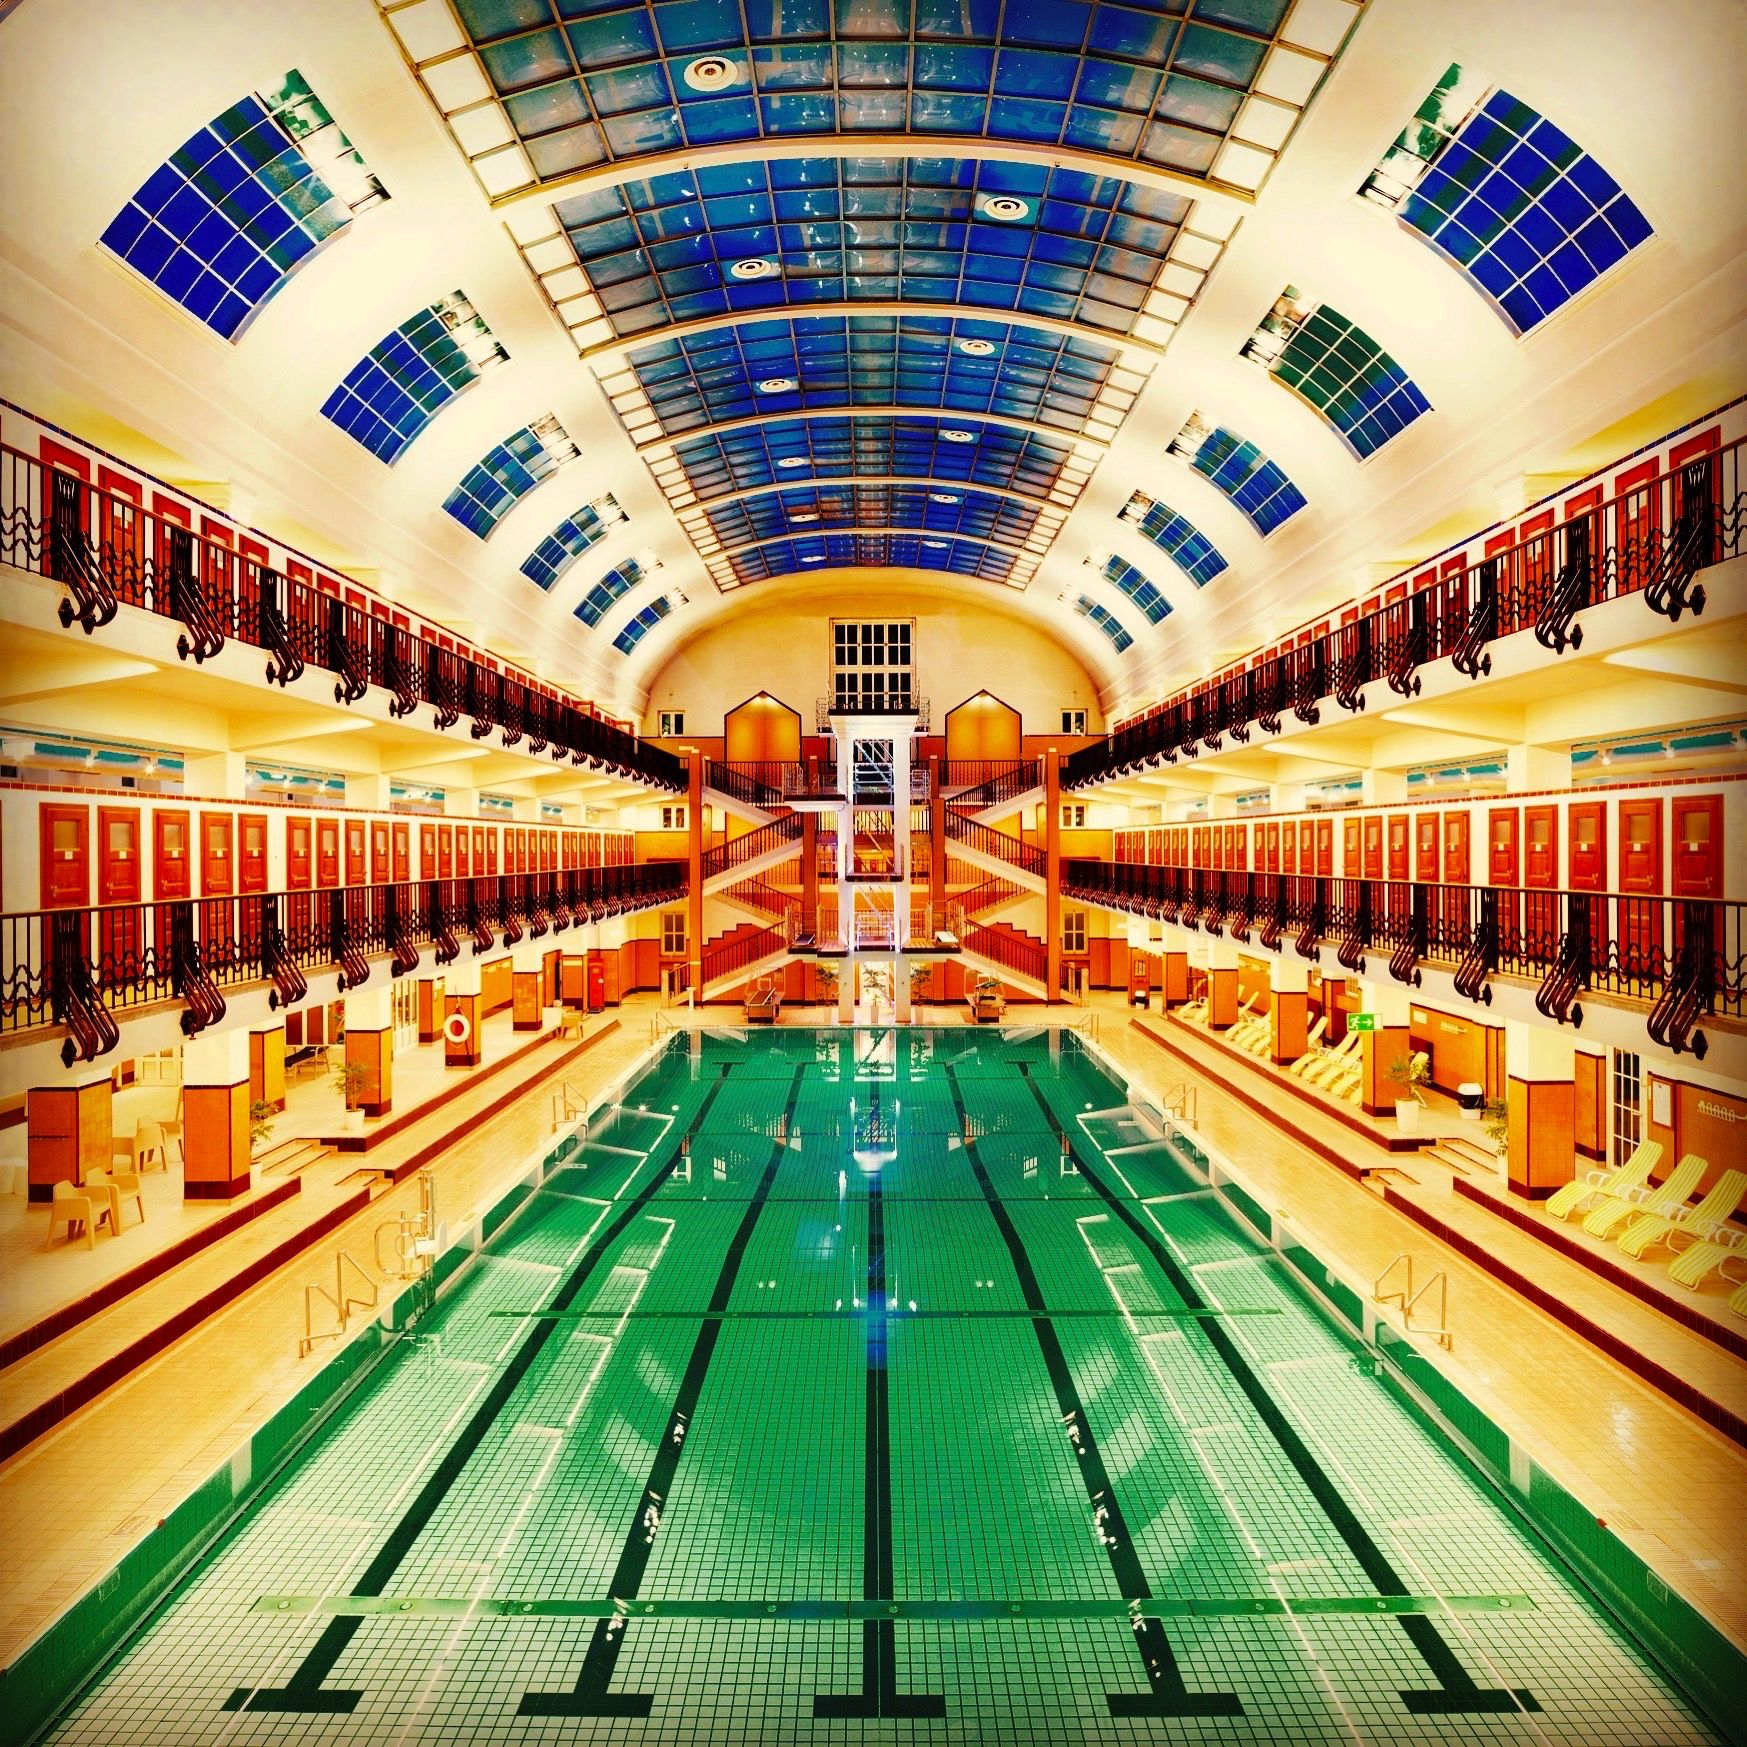 Architectural Inspiration The Stunning Amalienbad Art Deco Art Nouveau Indoor Pool In Vienna Austria Architectural Inspiration Deco Instagram Photo